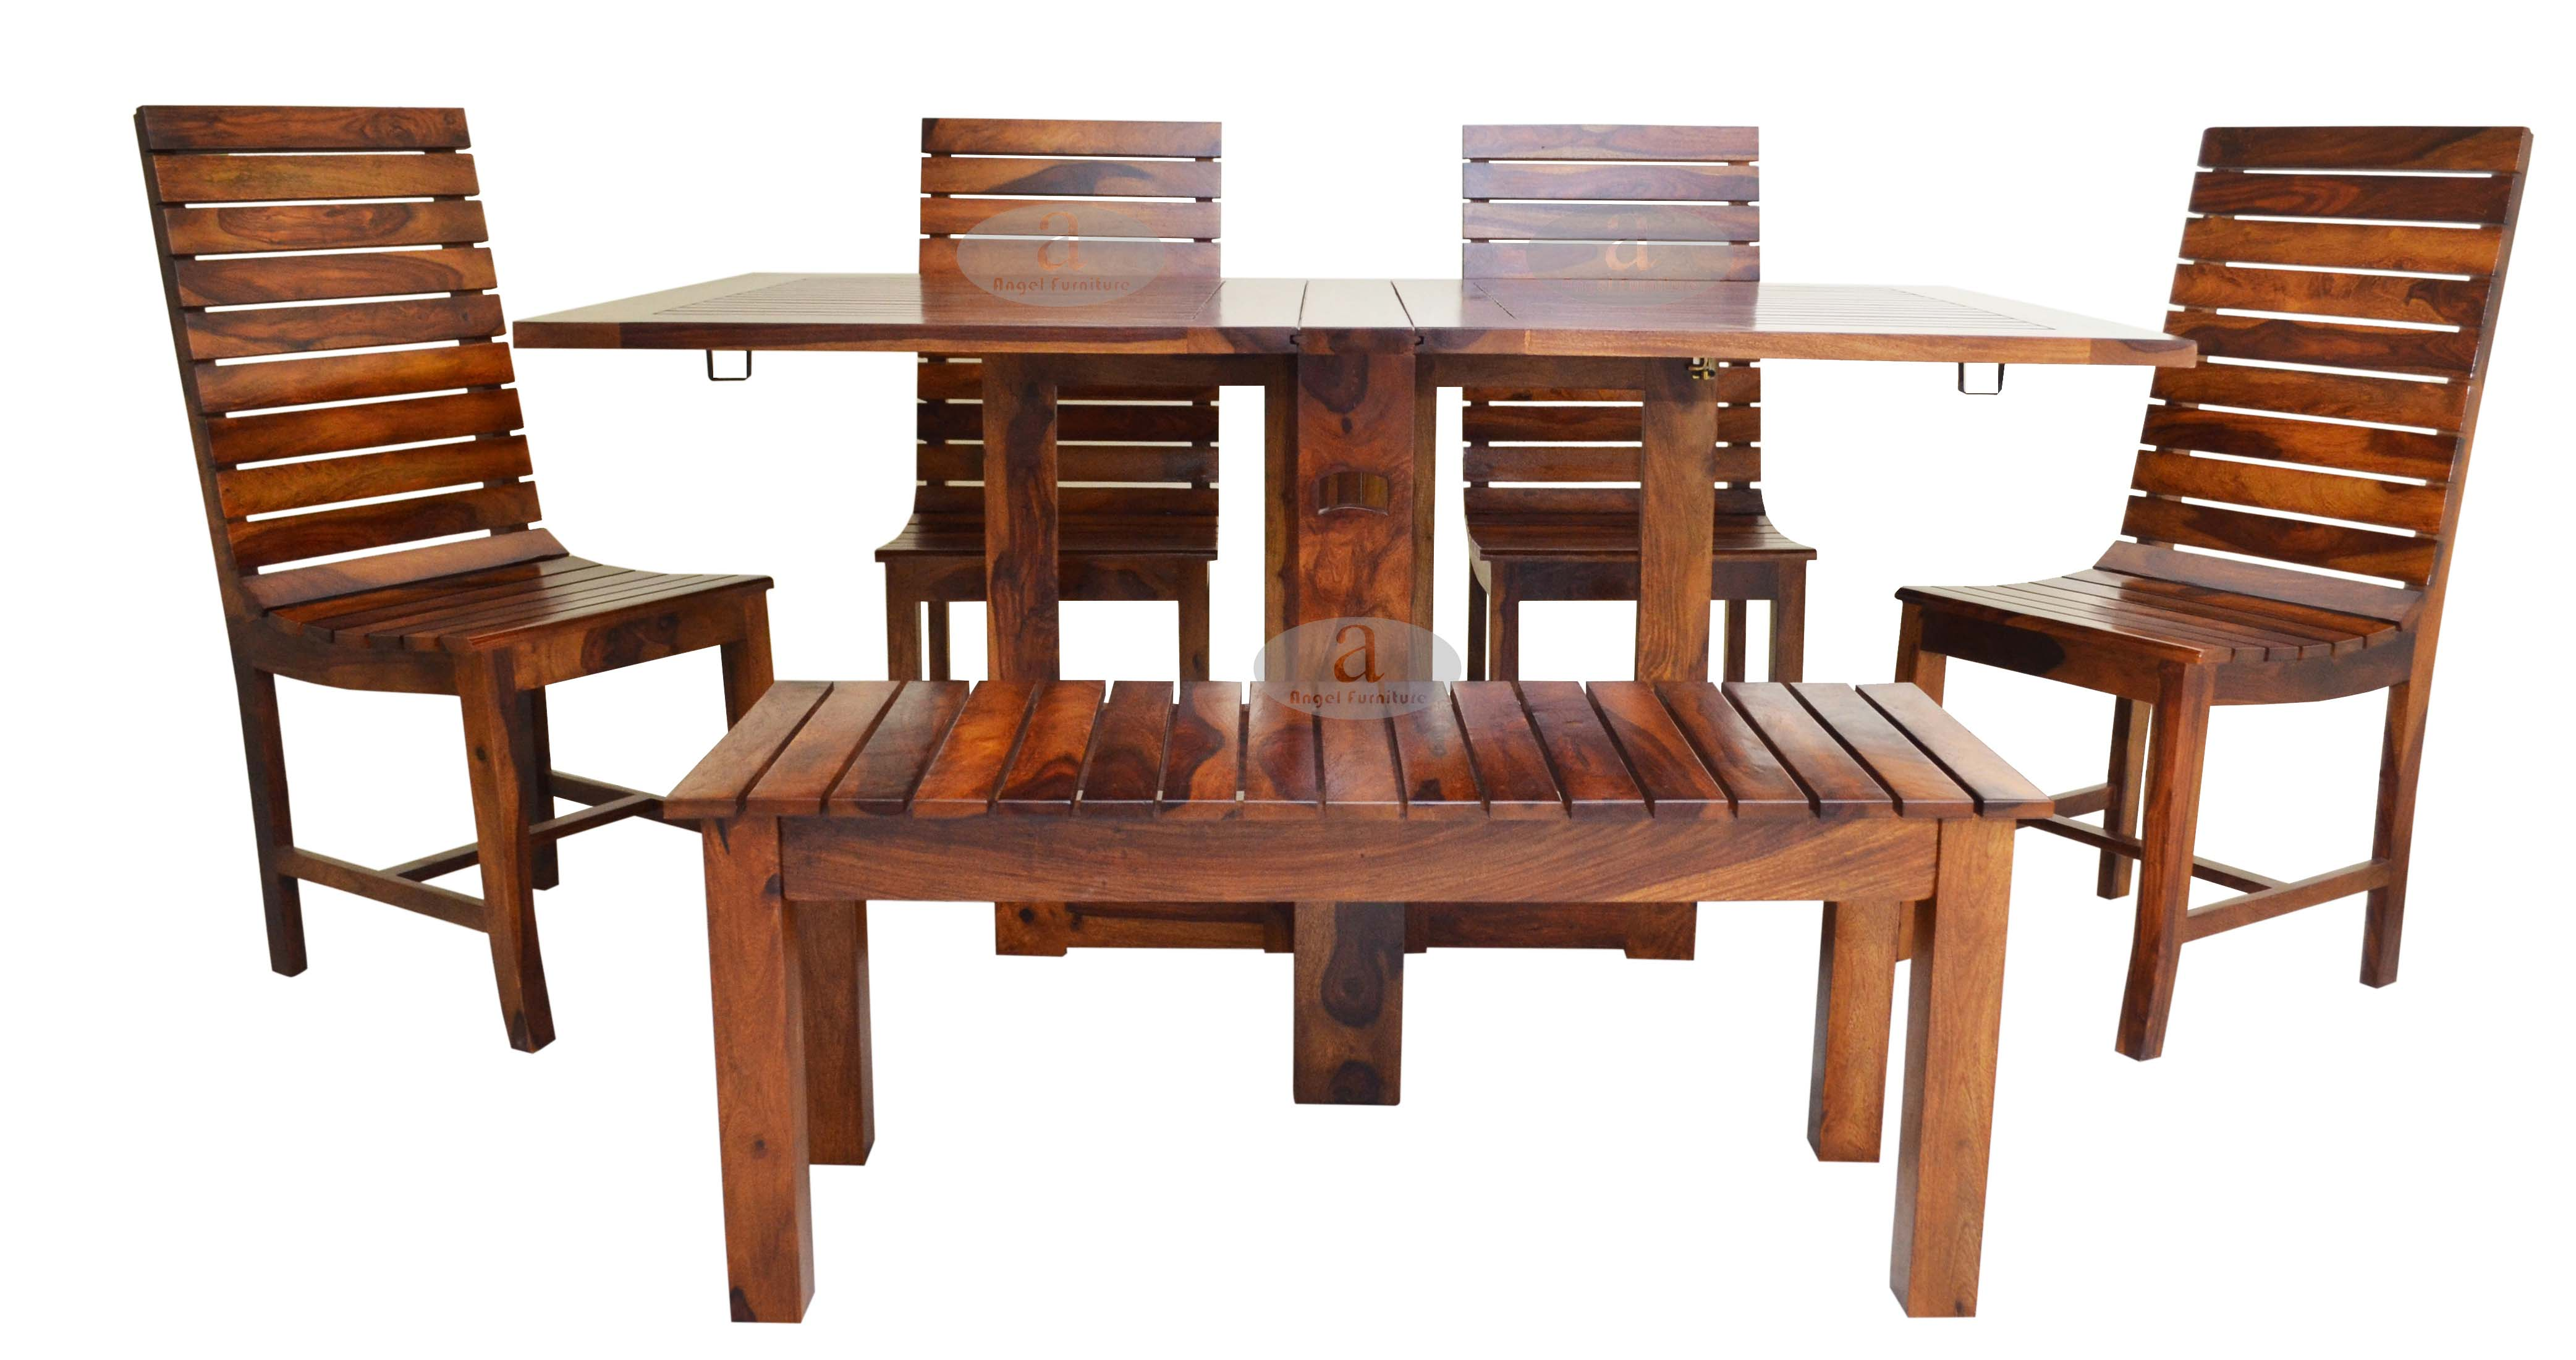 Angel s Stripped Design Four Seater Dining Set With Foldable Dining